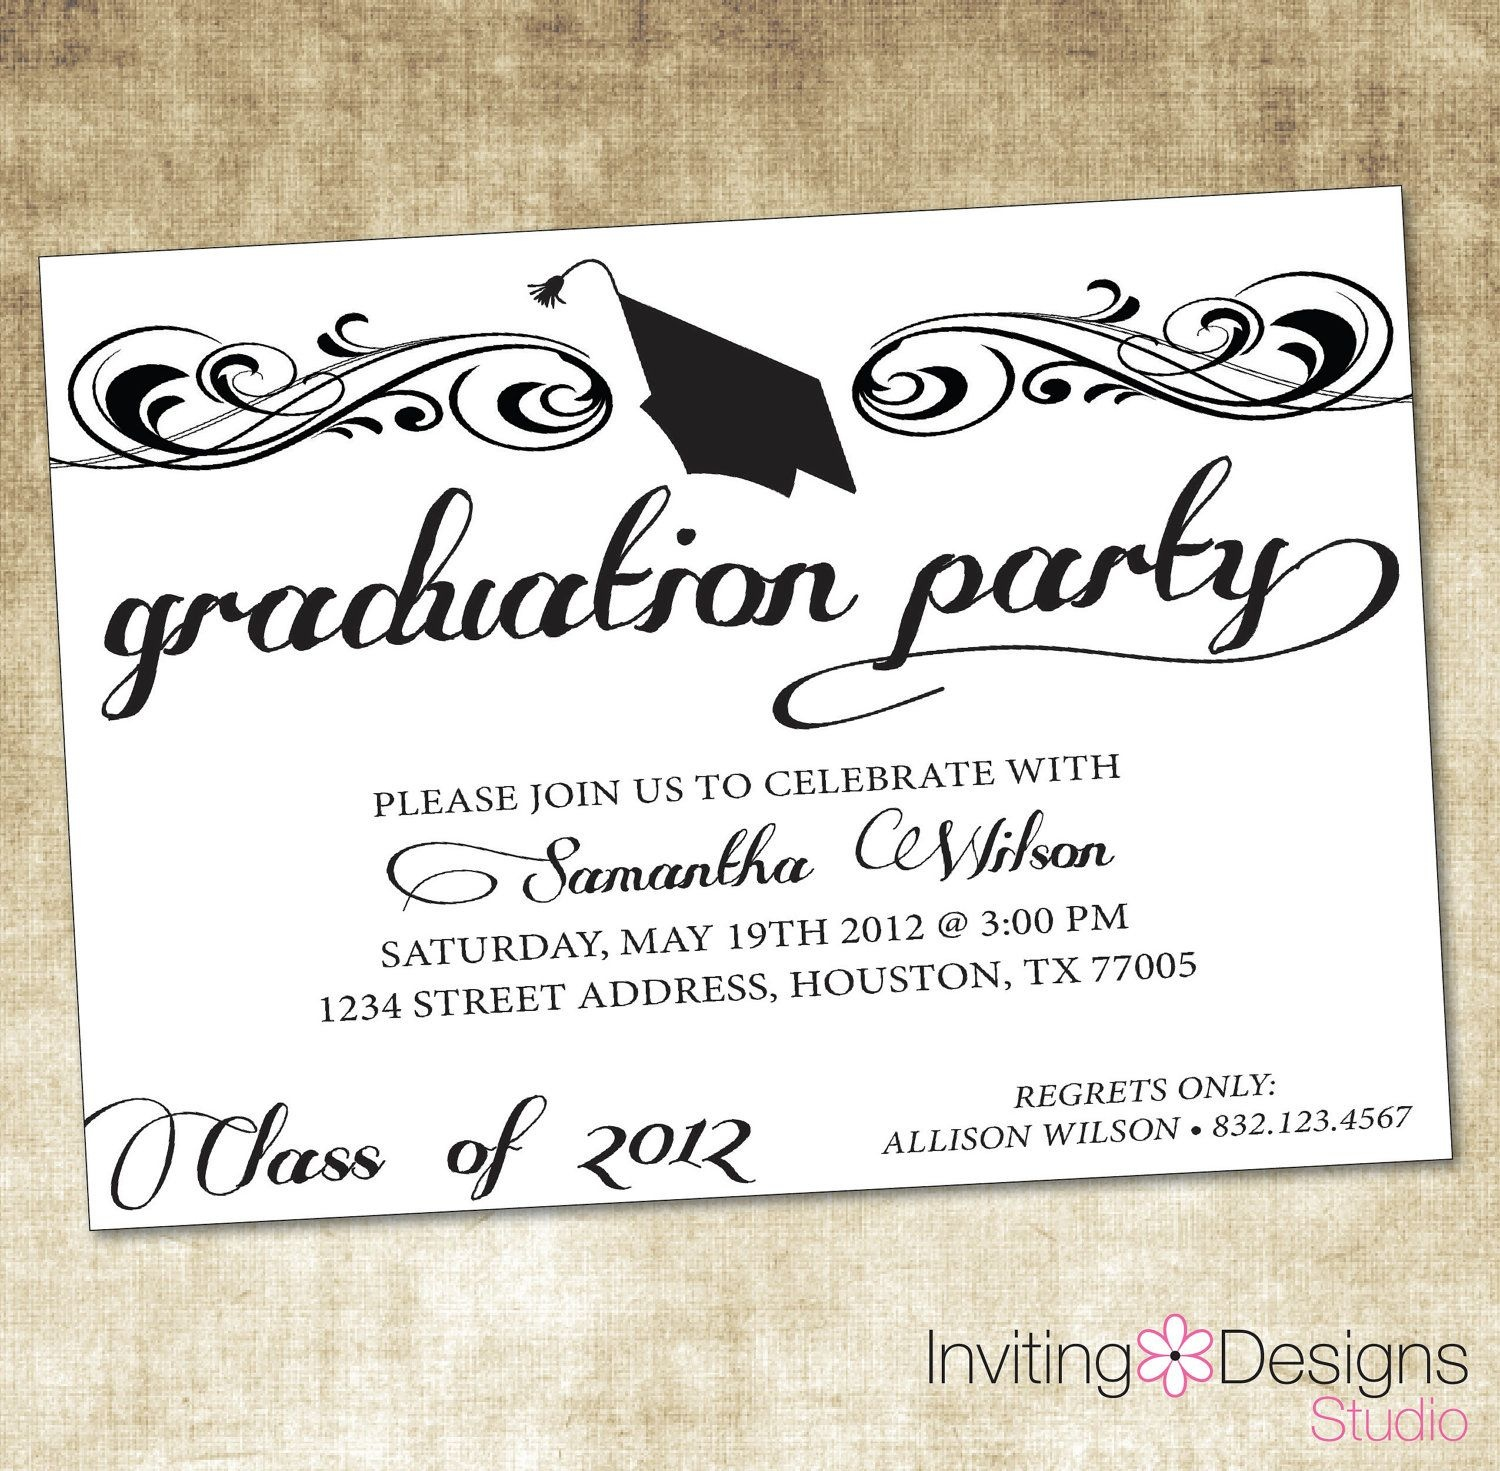 Image Result For Graduation Party Invitation Wording Ideas | Zach - Free Printable Graduation Party Invitations